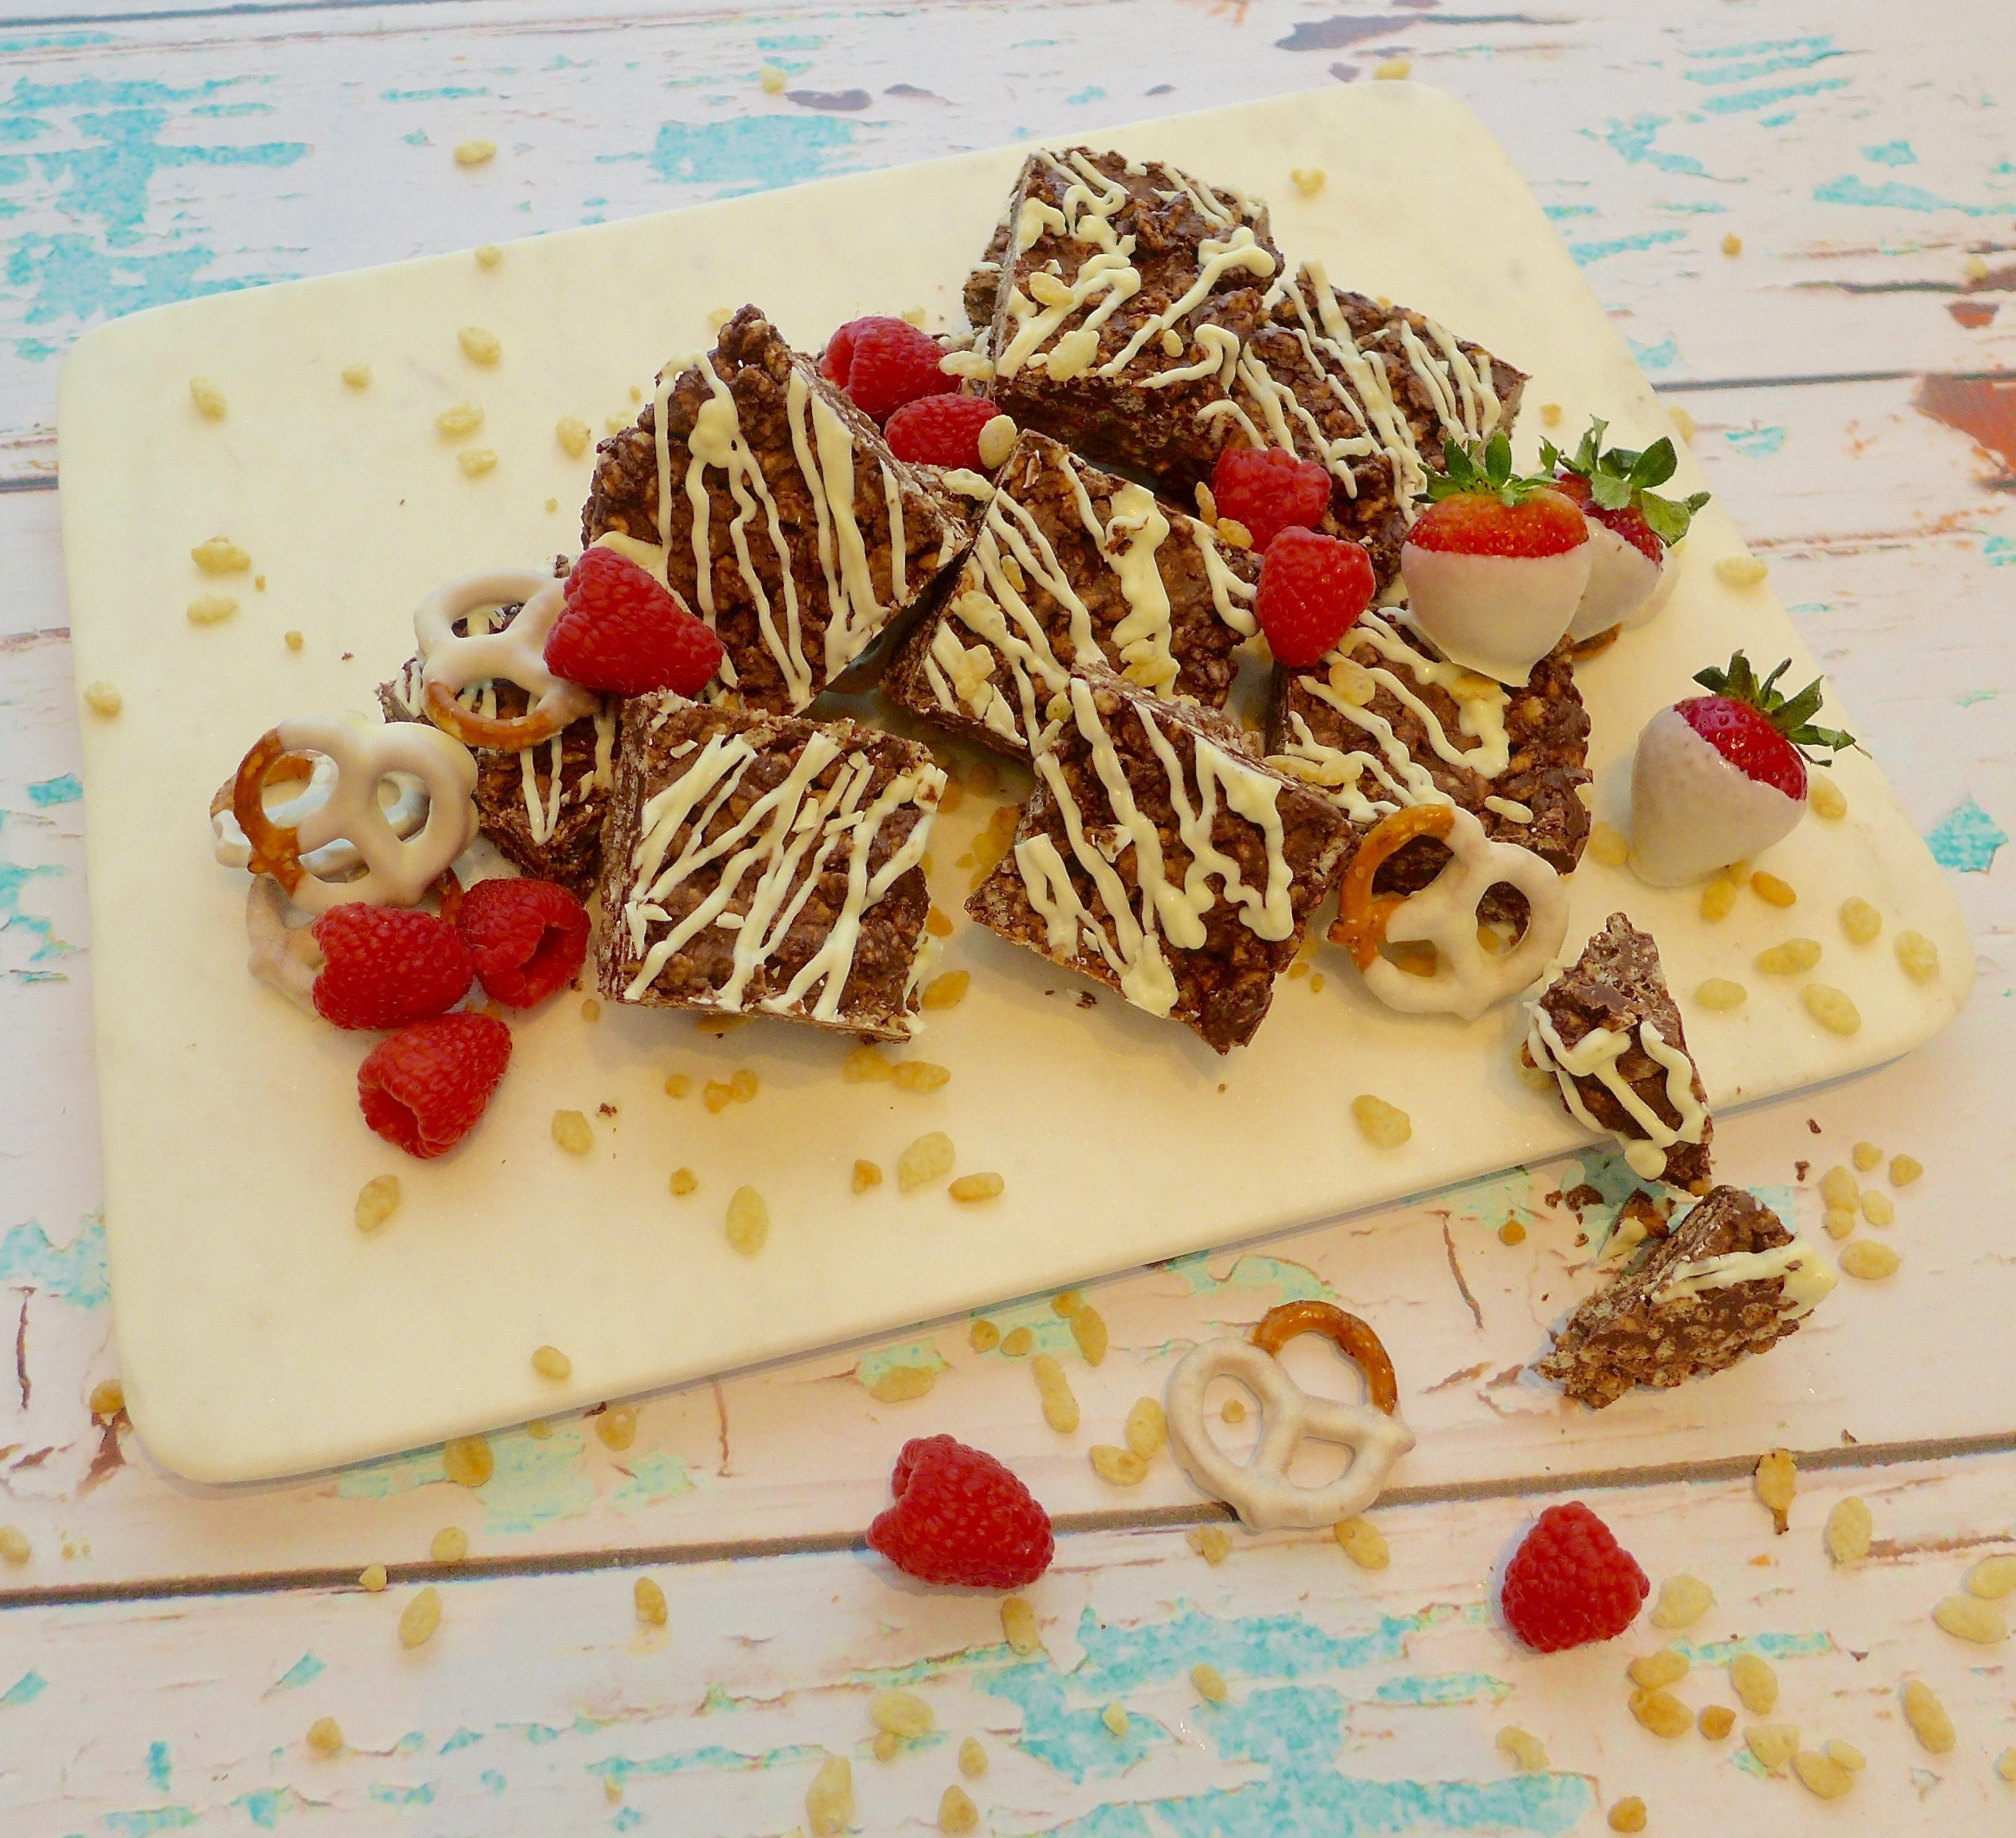 Get the party started with these no bake, gluten free chocolate crunch bars. Recipe and decorating ideas at diginwithdana.com